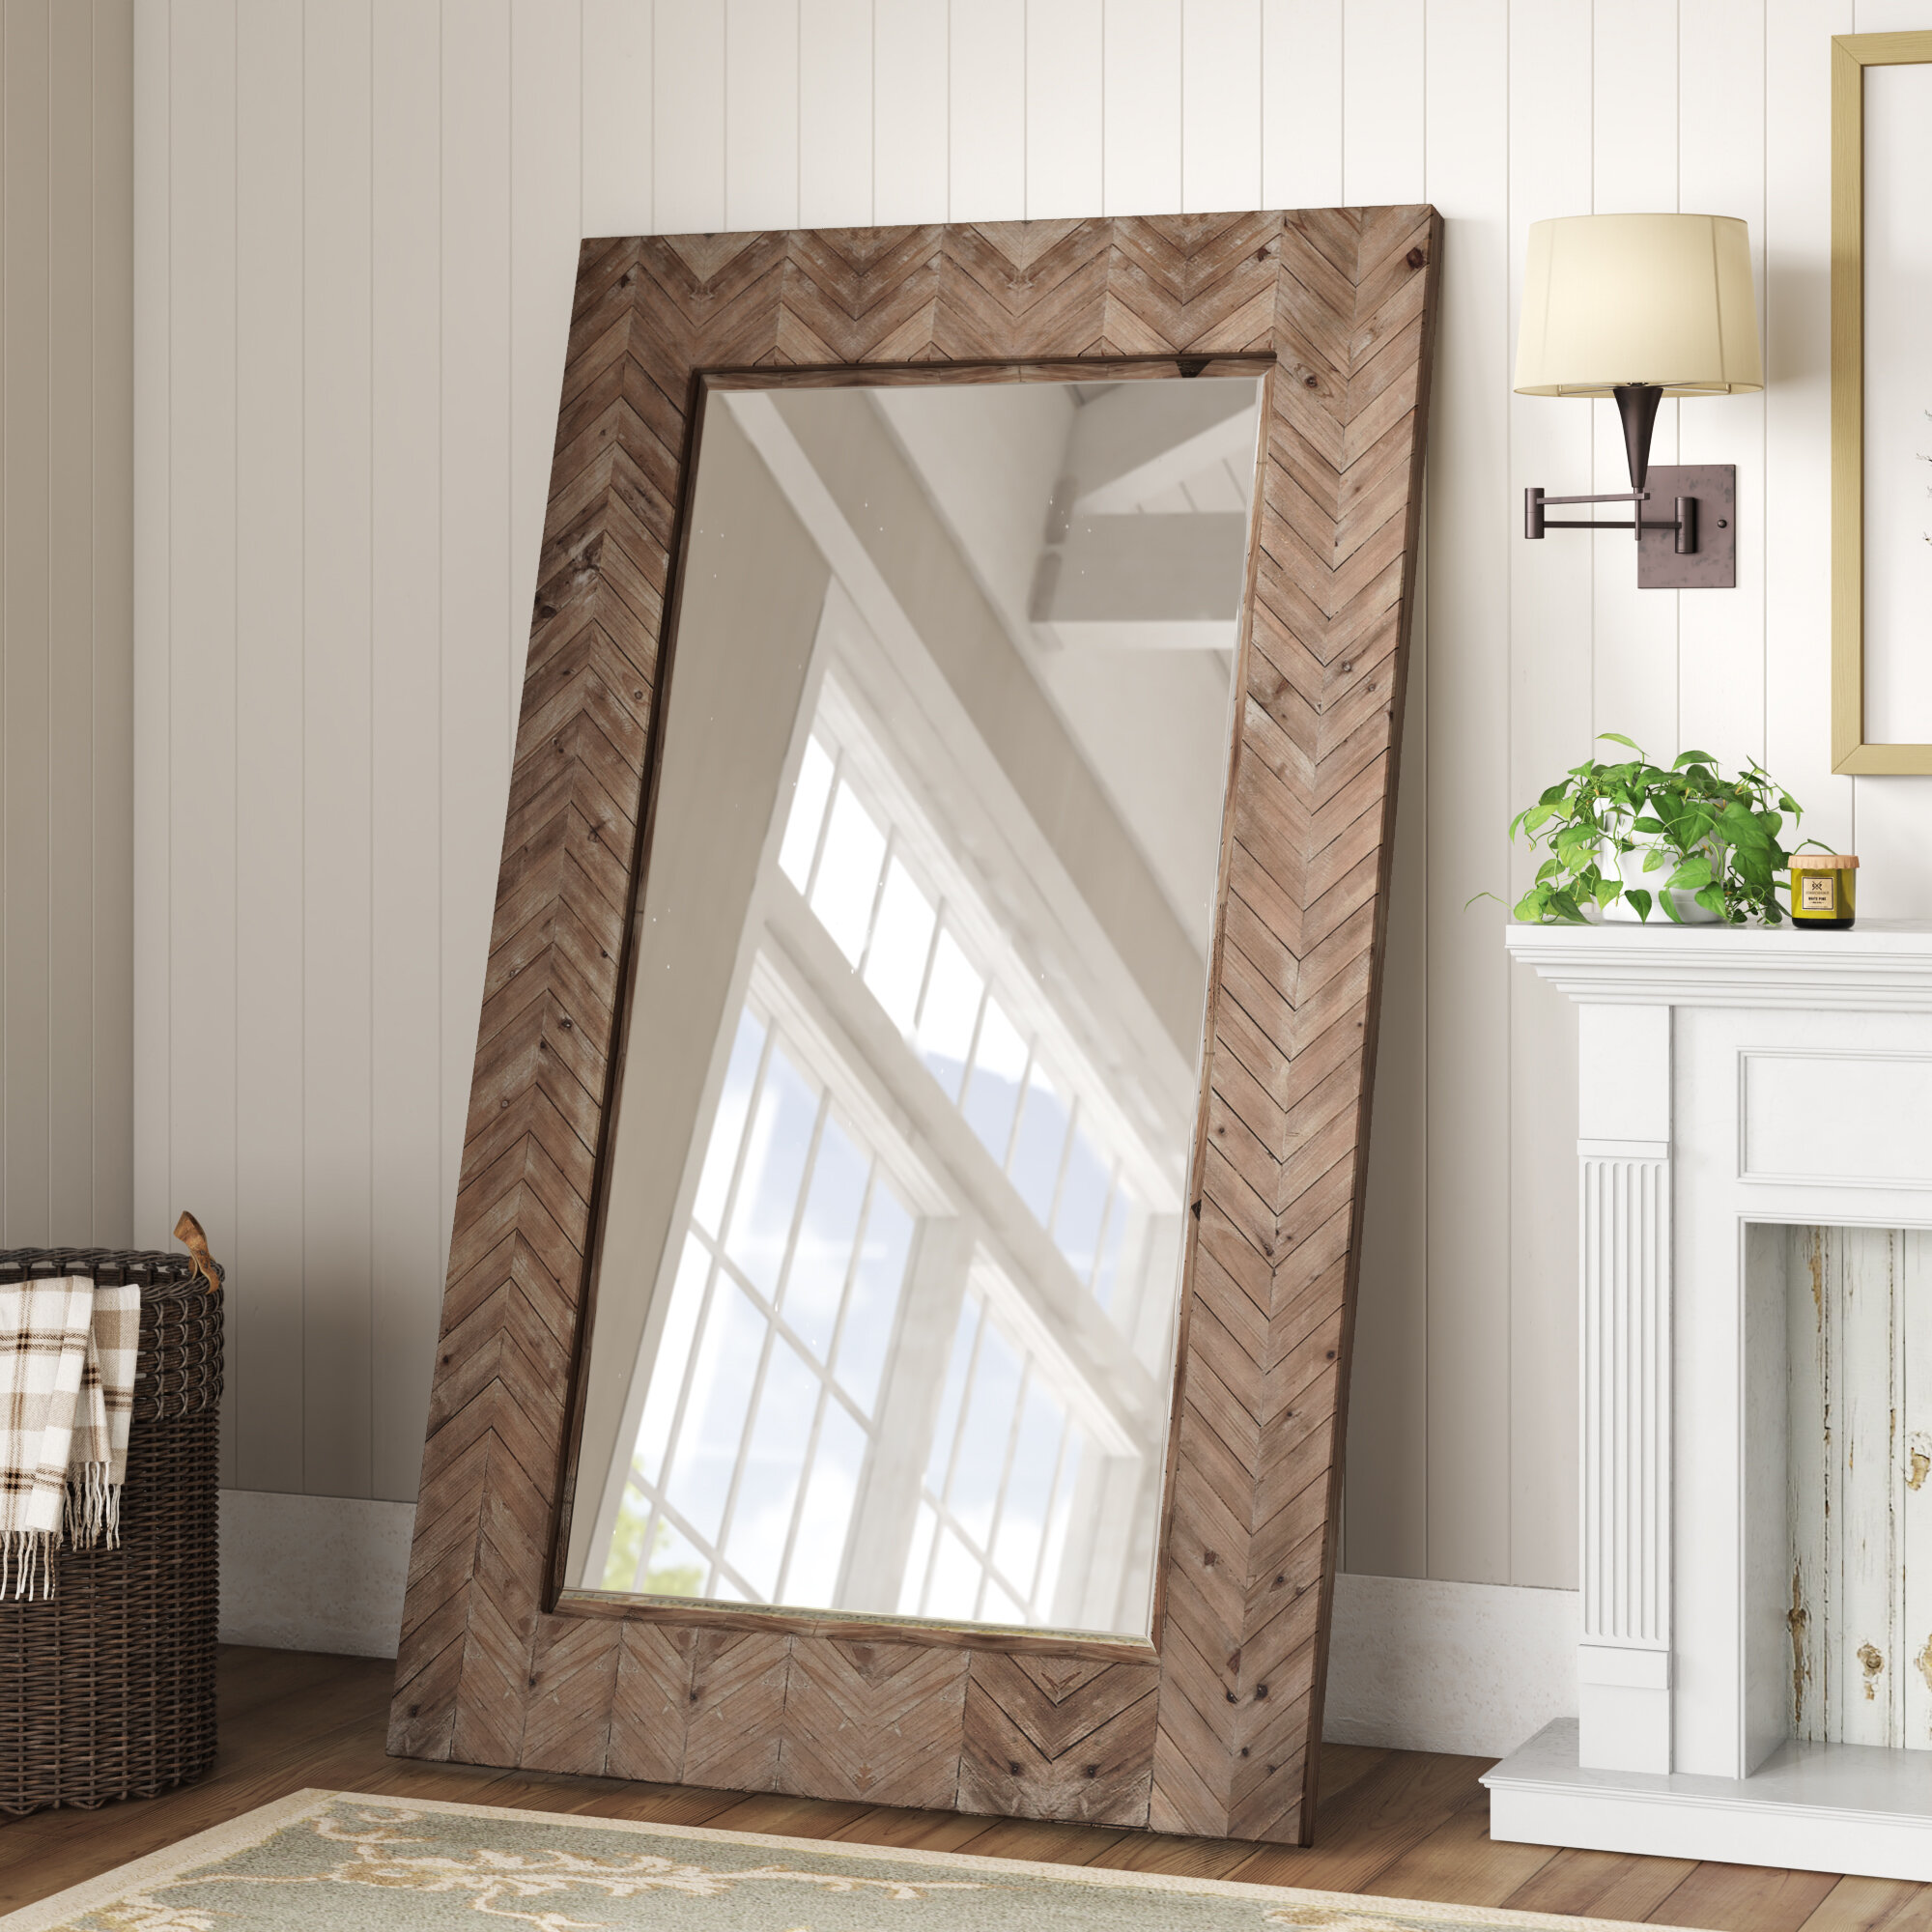 Coastal Full Length Mirrors You Ll Love In 2021 Wayfair